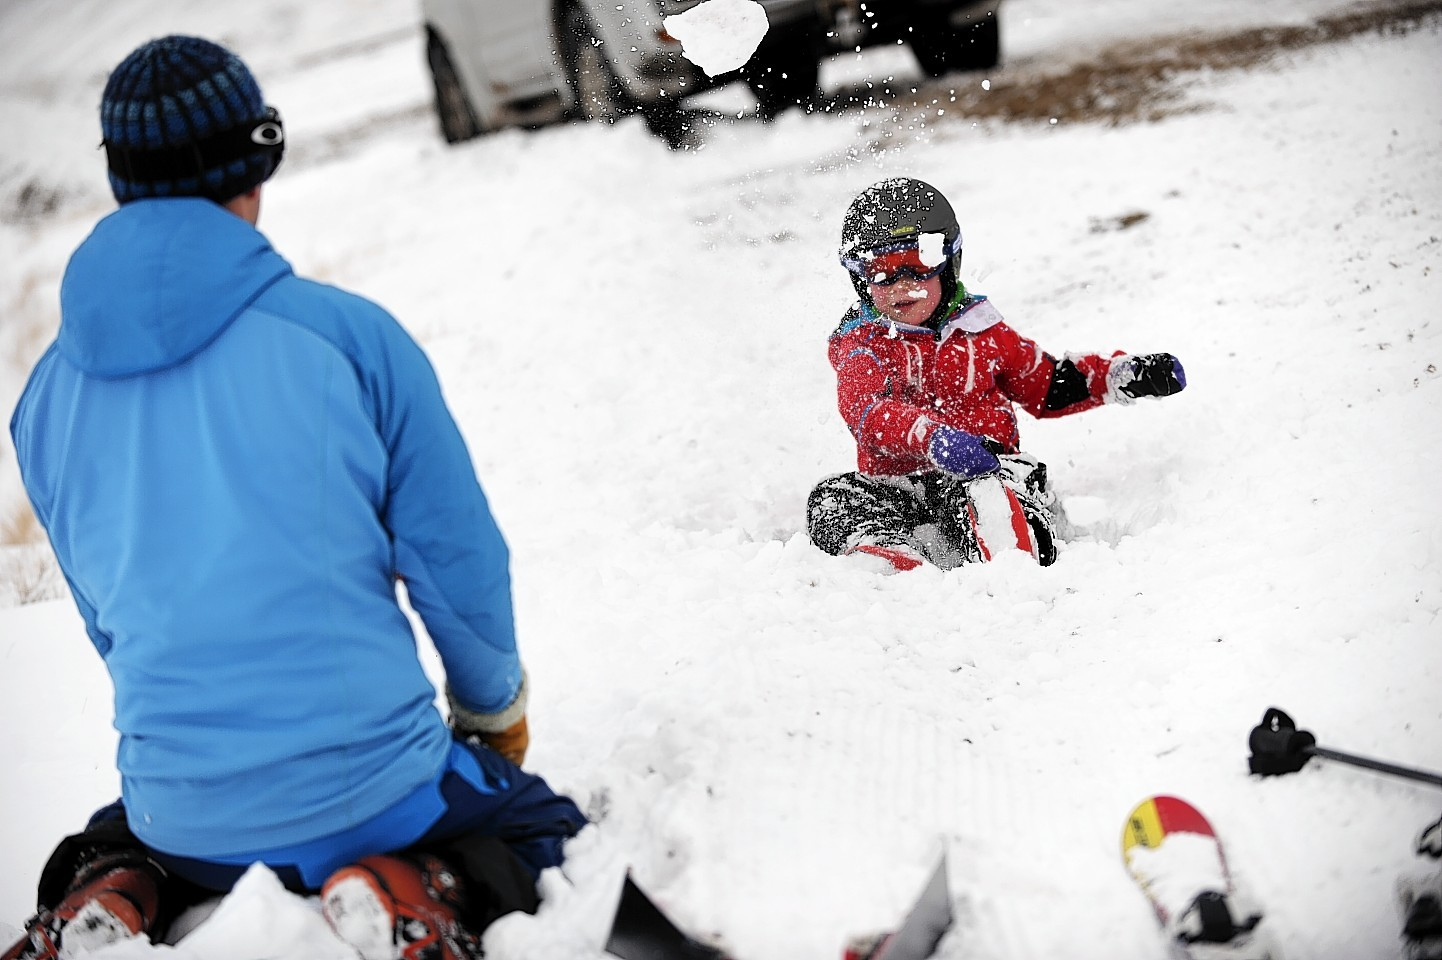 Paul Easto, takes a break from skiing at the Lecht to play in the snow with his son, Euan